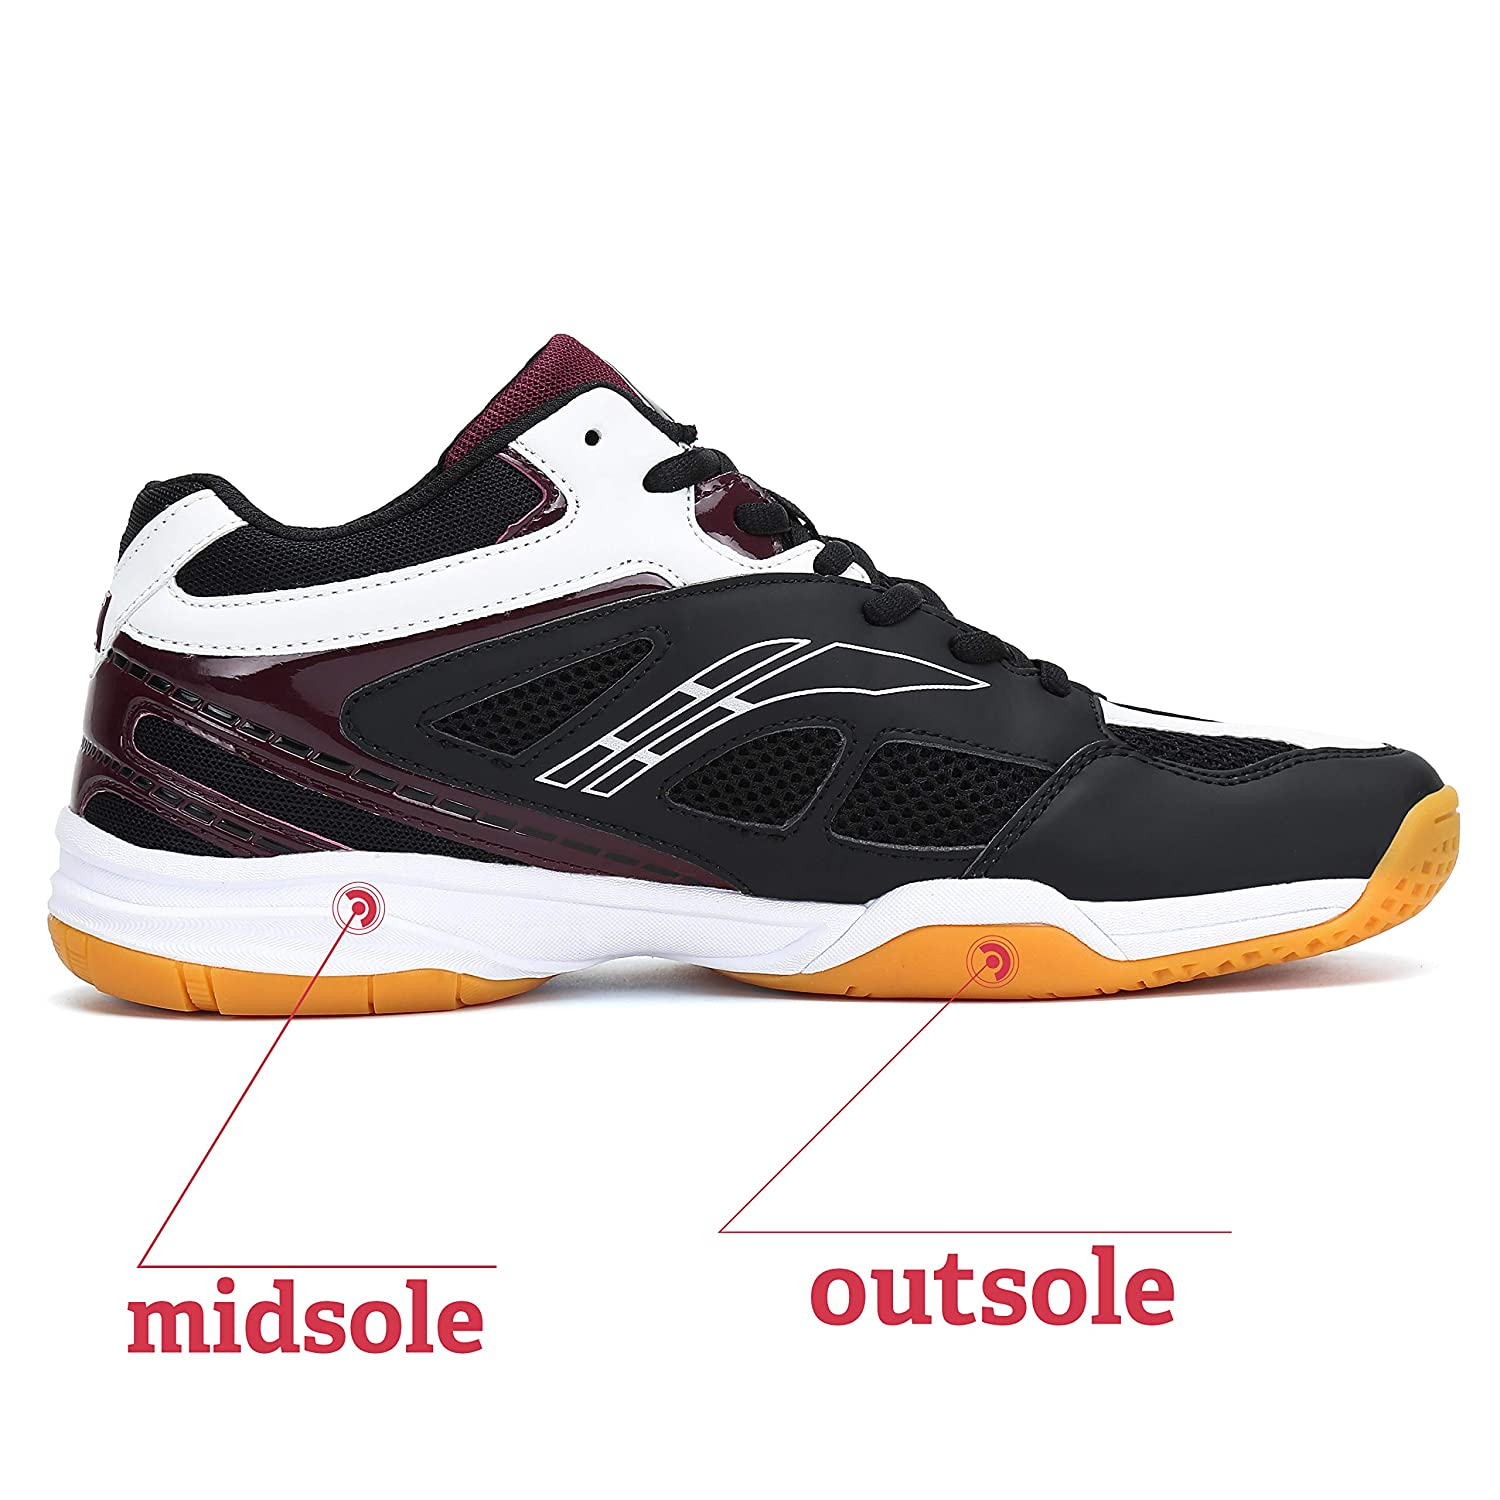 Fashiontown Athletic Mens Sneakers Badminton Shoes Non Slip Indoor Court Outdoor Safety Training Shoe White